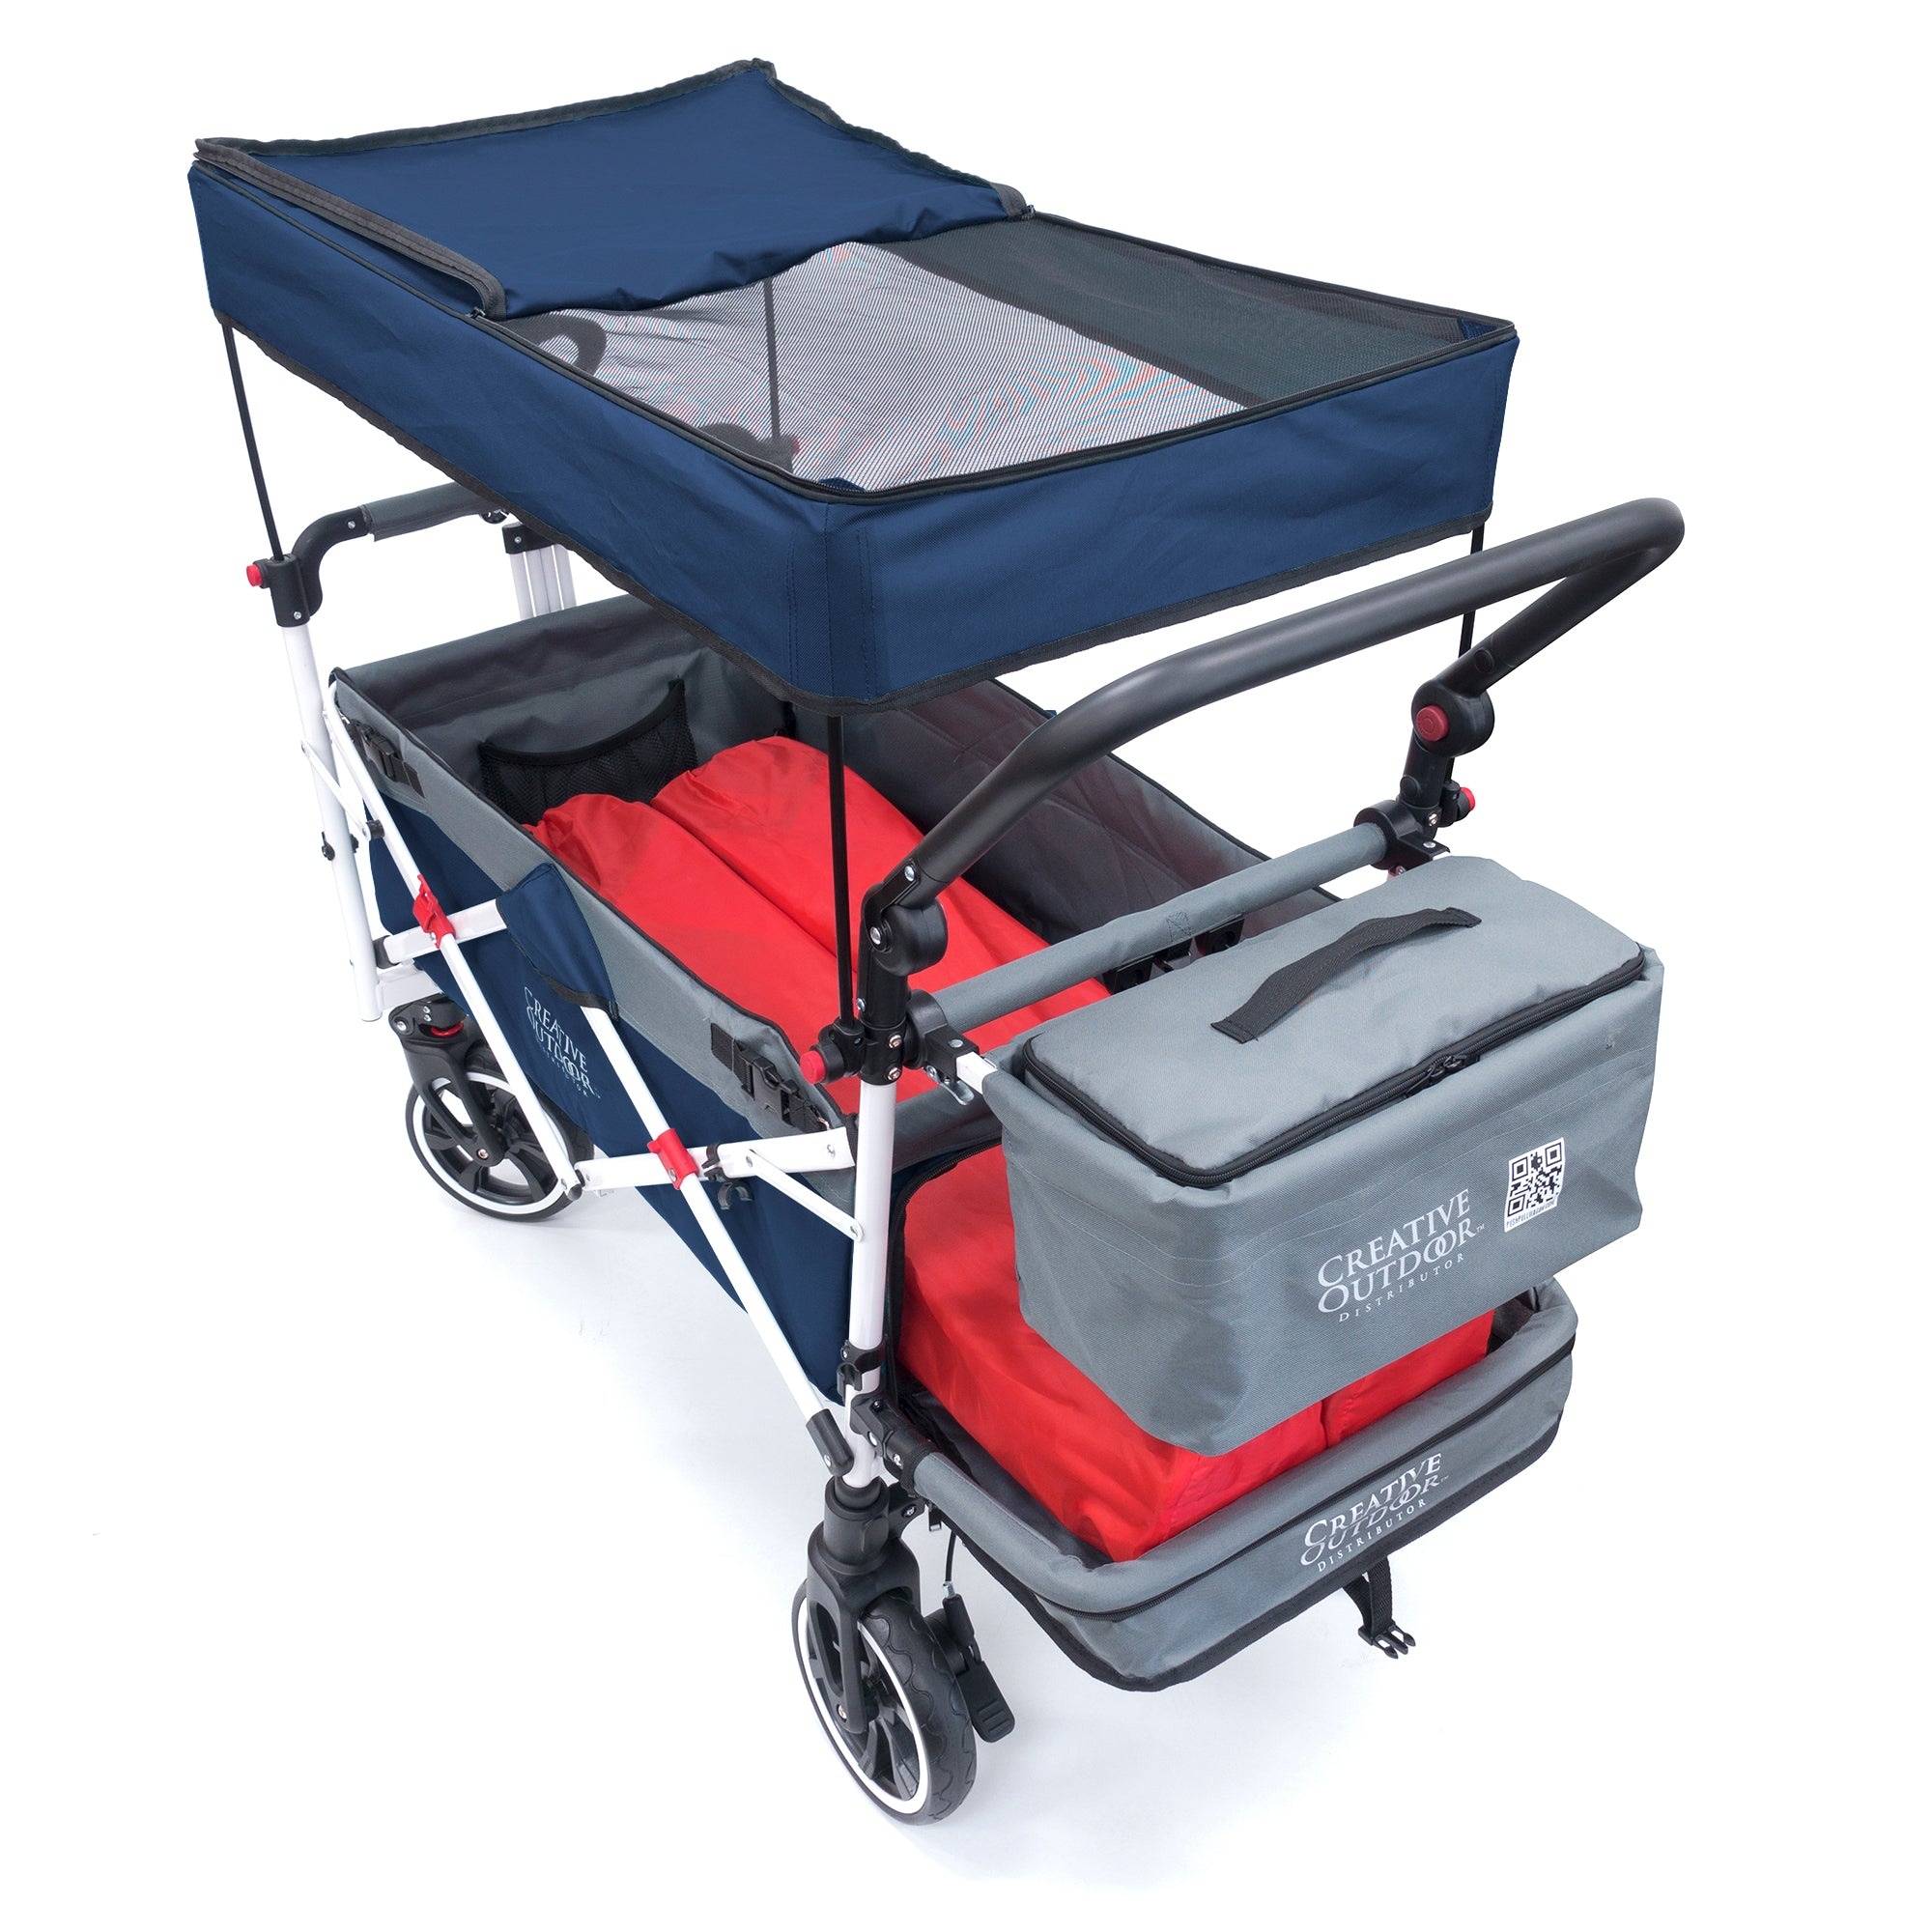 Push Pull TITANIUM SERIES PLUS Folding Wagon Stroller with Canopy | Navy Blue